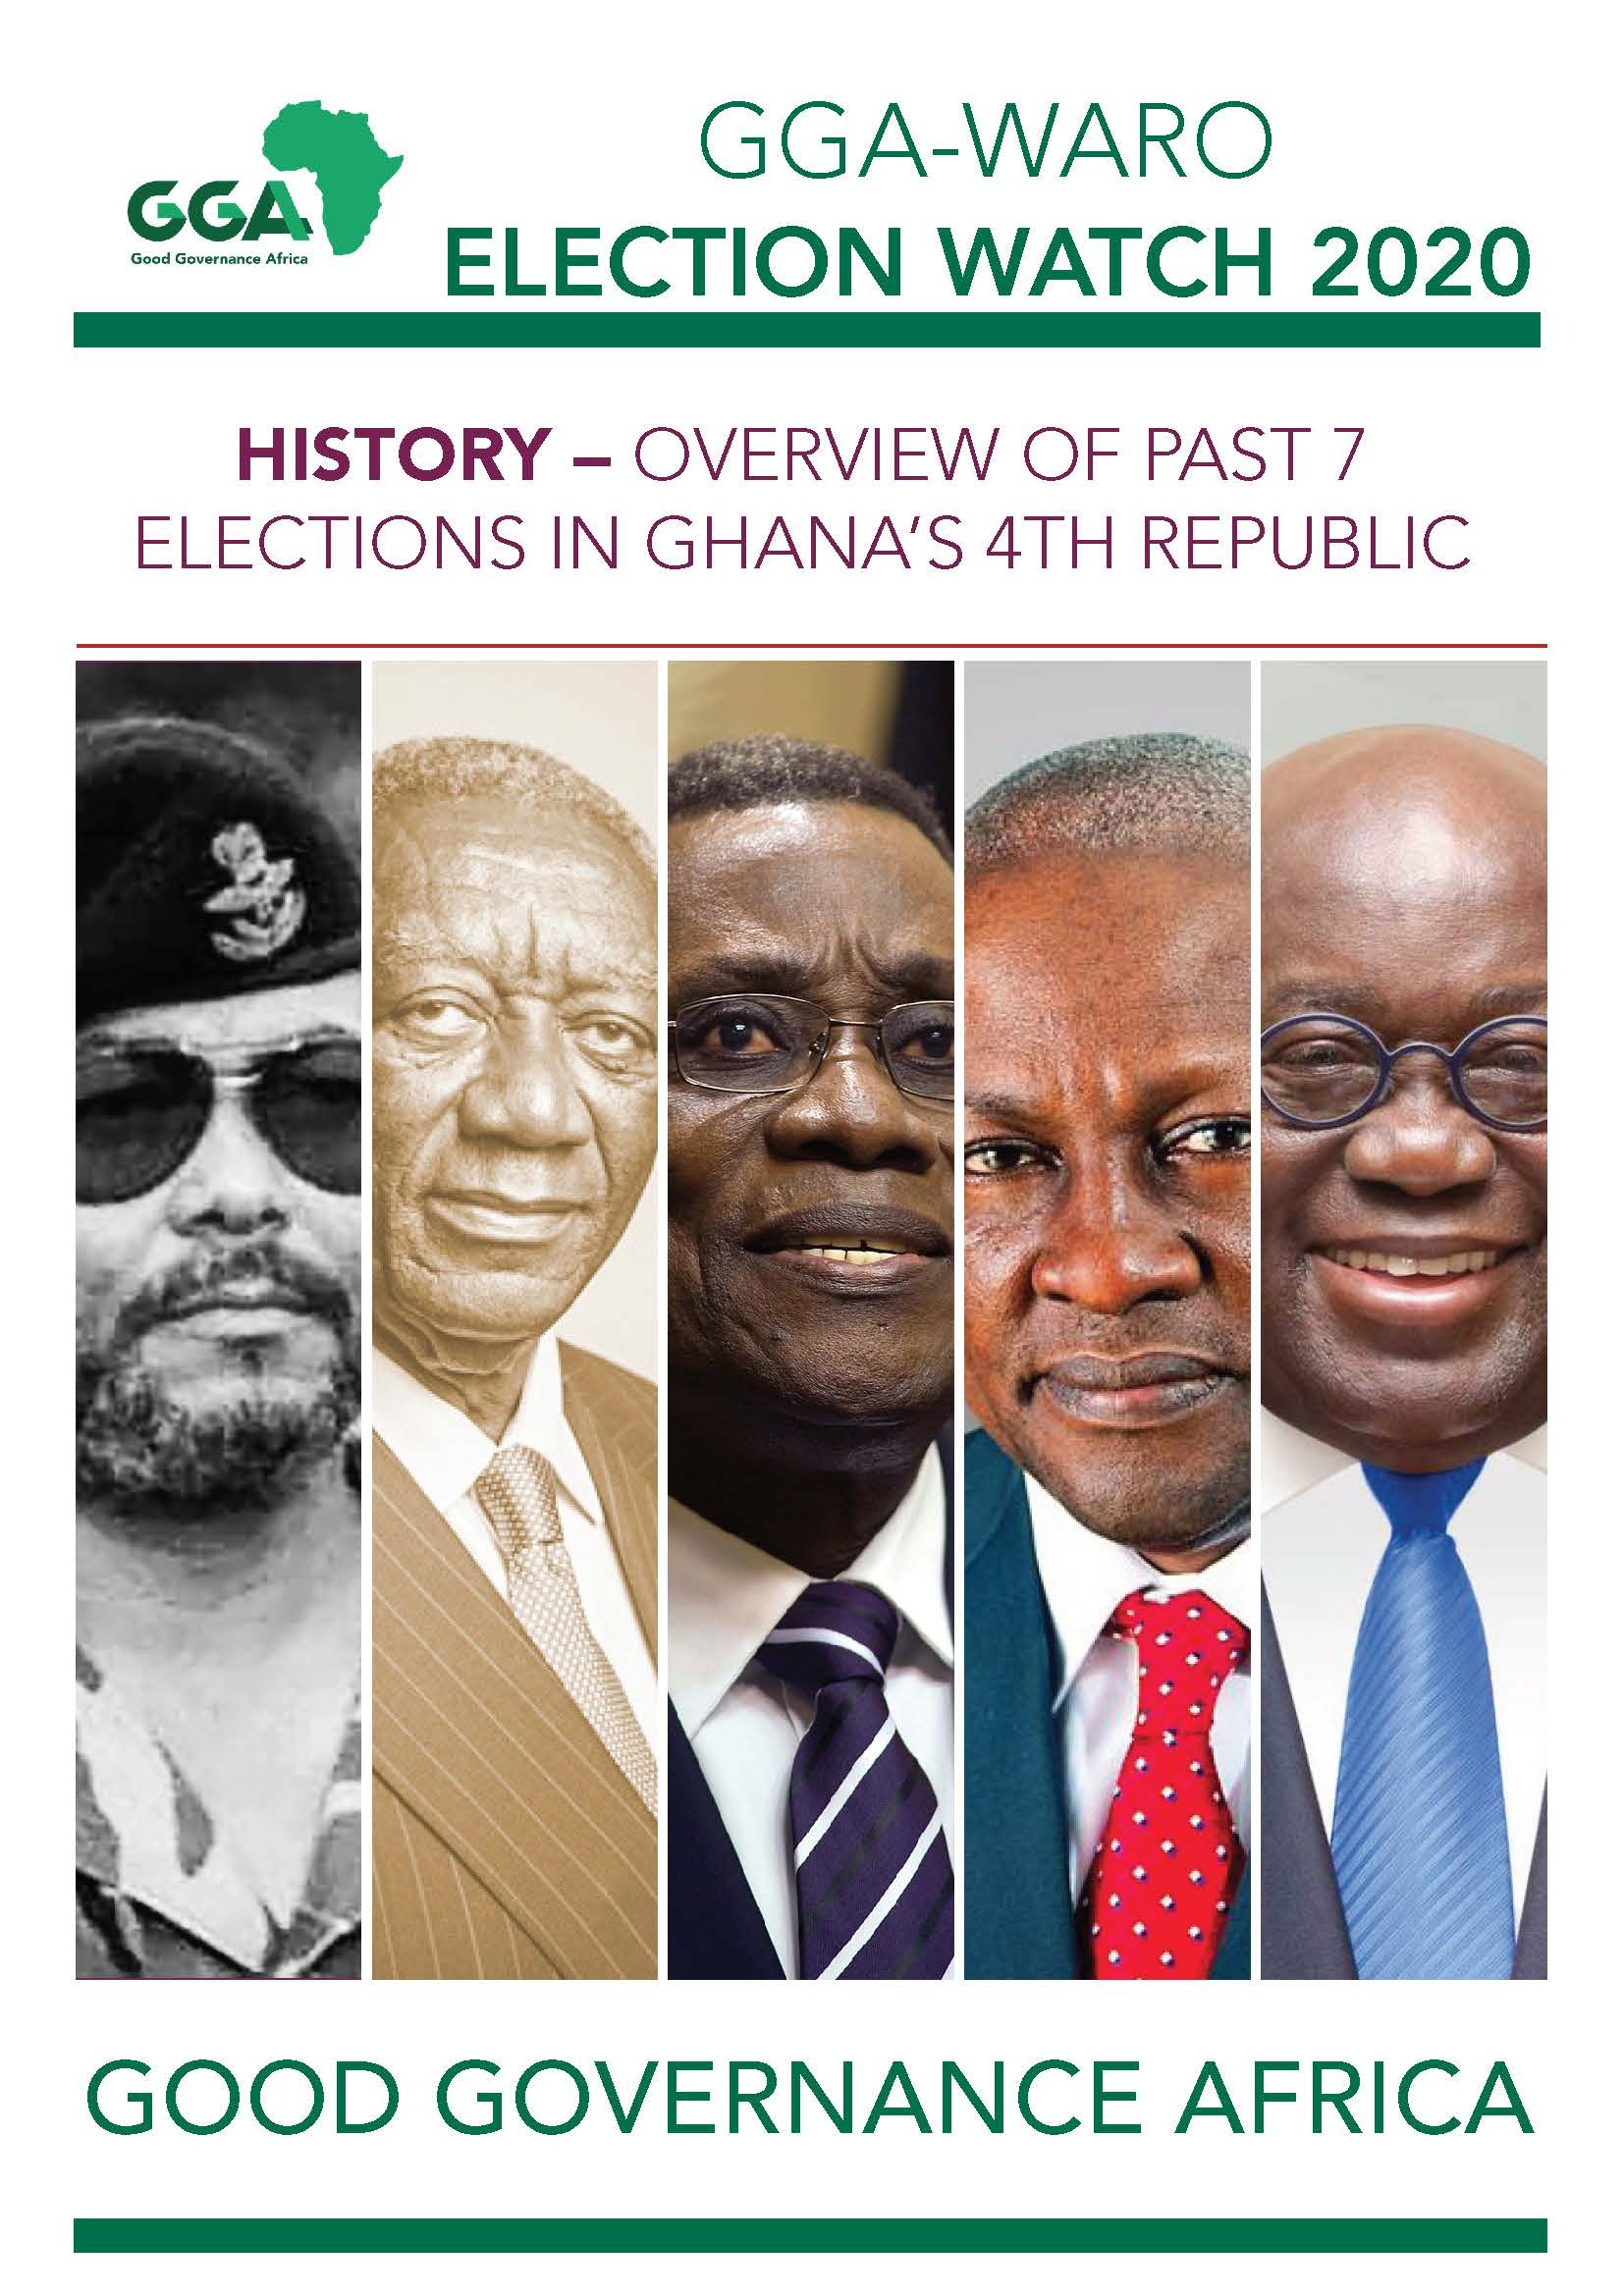 Overview Of Past 7 Elections In Ghana's 4th Republic